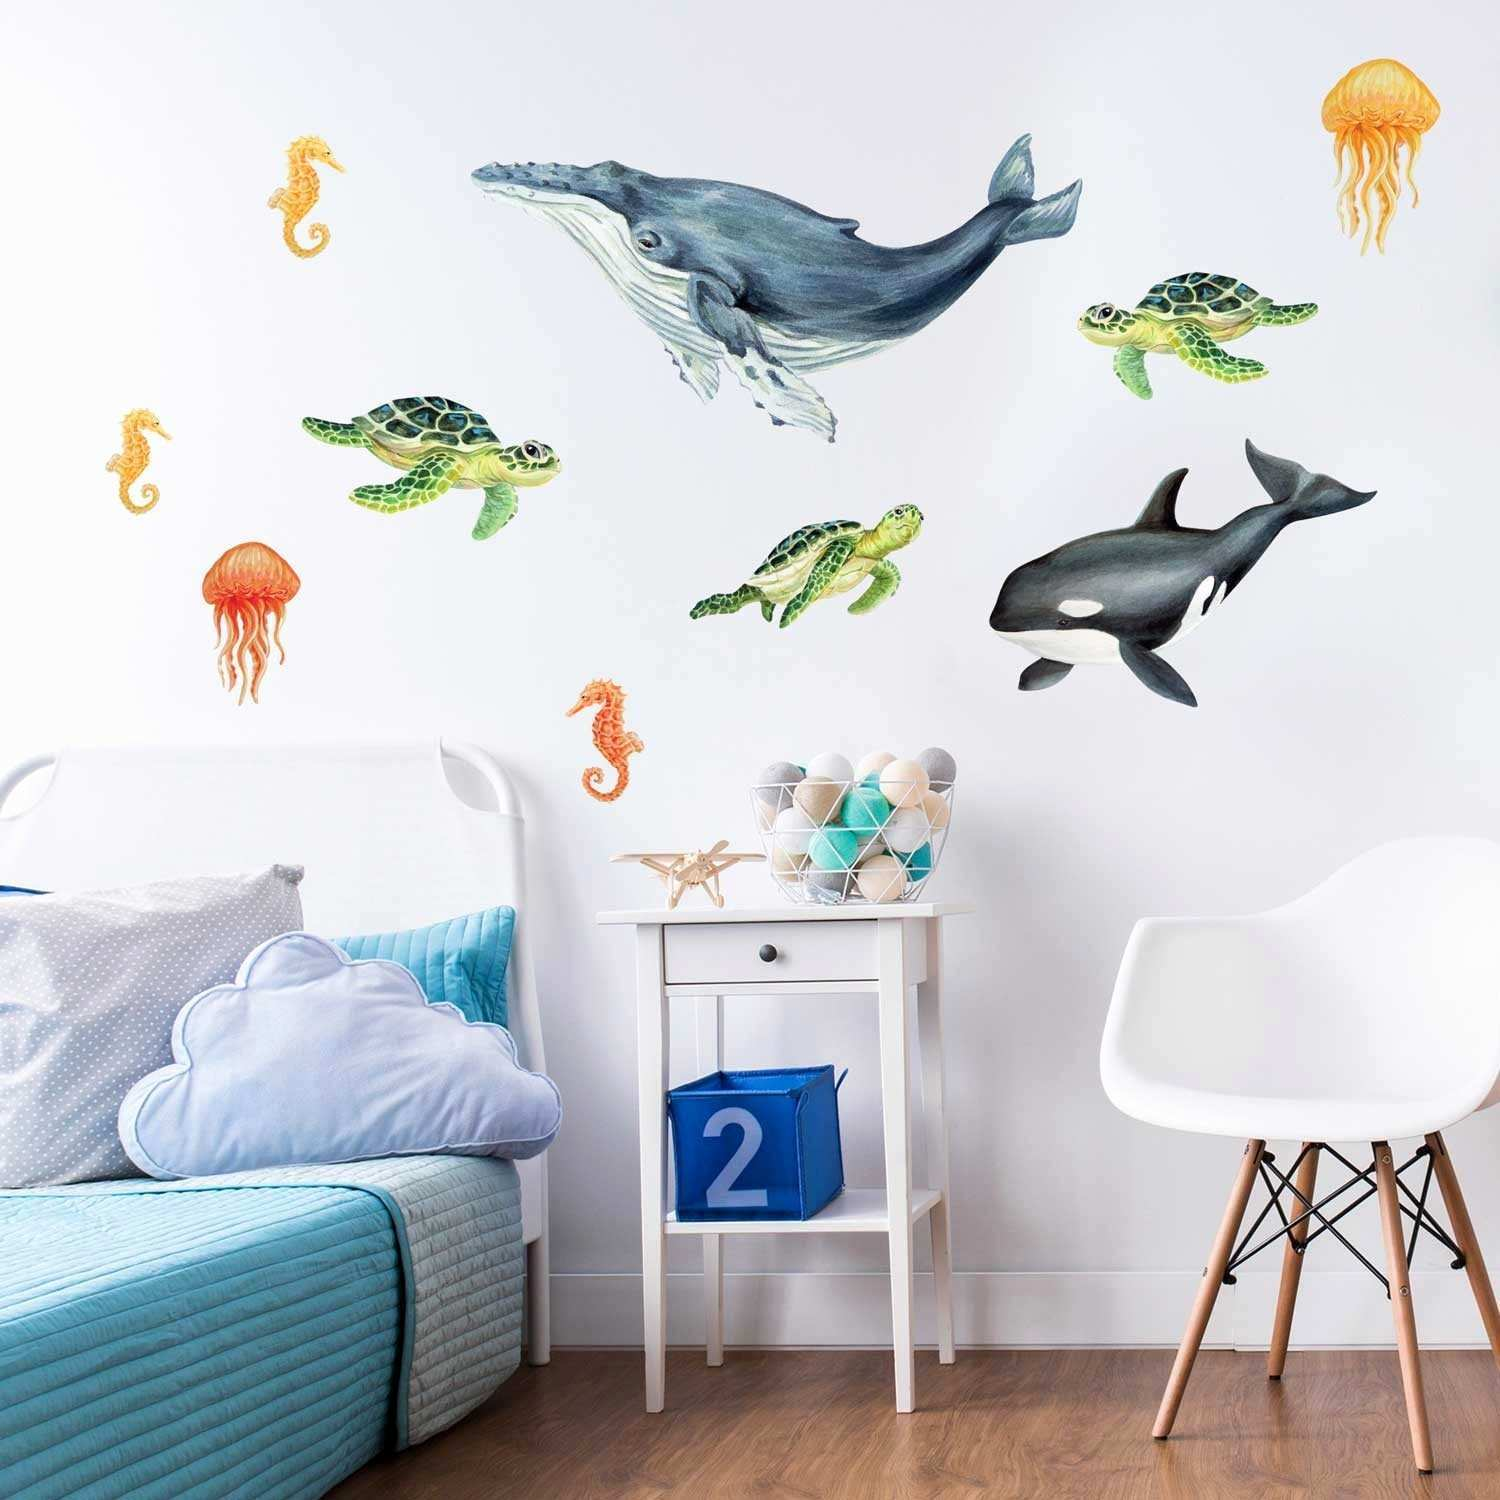 Vinyl Wall Decals Disney Lovely Wall Decal Luxury 1 Kirkland Wall